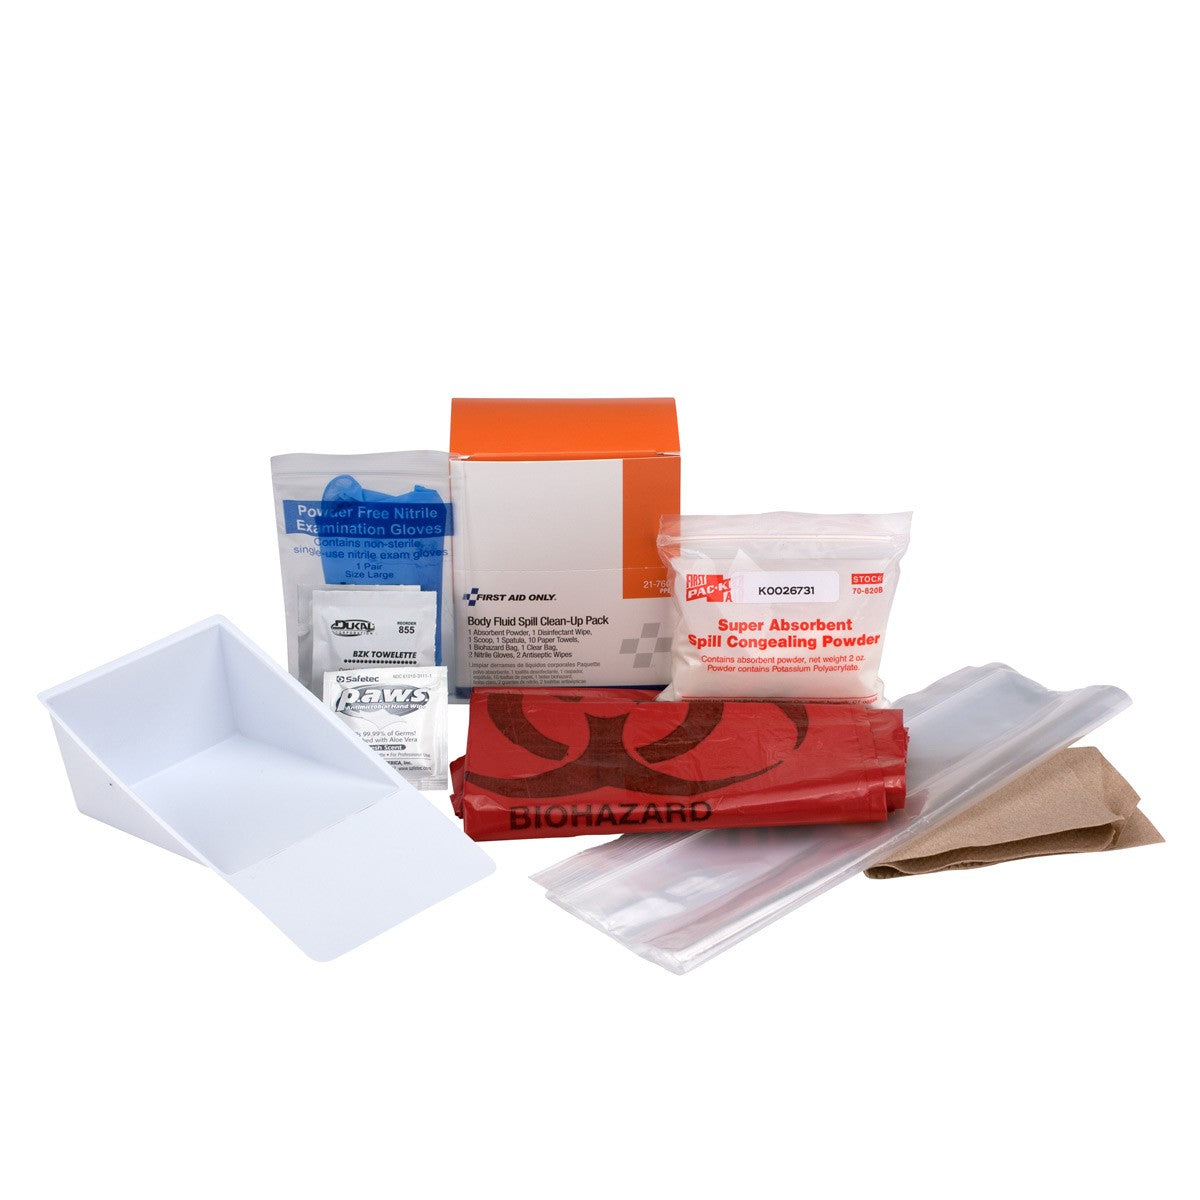 Bloodborne Pathogen (BBP) Spill Clean-Up Pack (22 Piece) Pack - BS-FAK-21-760-1-FM